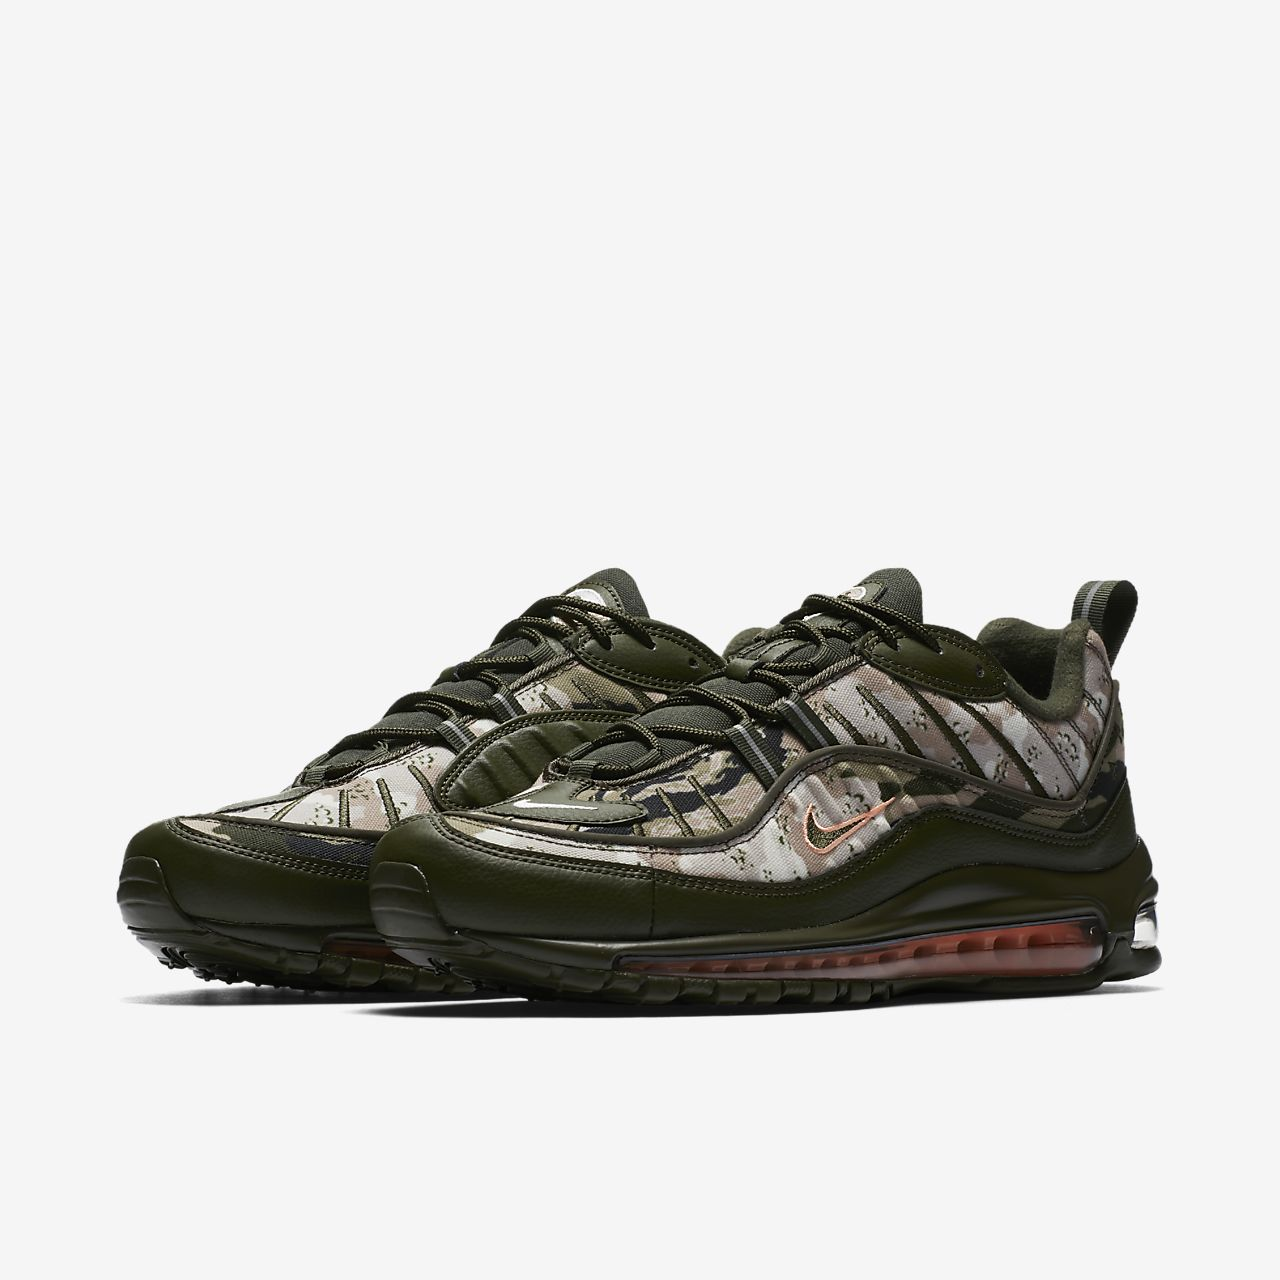 premium selection 343dd 30d6f ... Nike Air Max 98 Men s Shoe